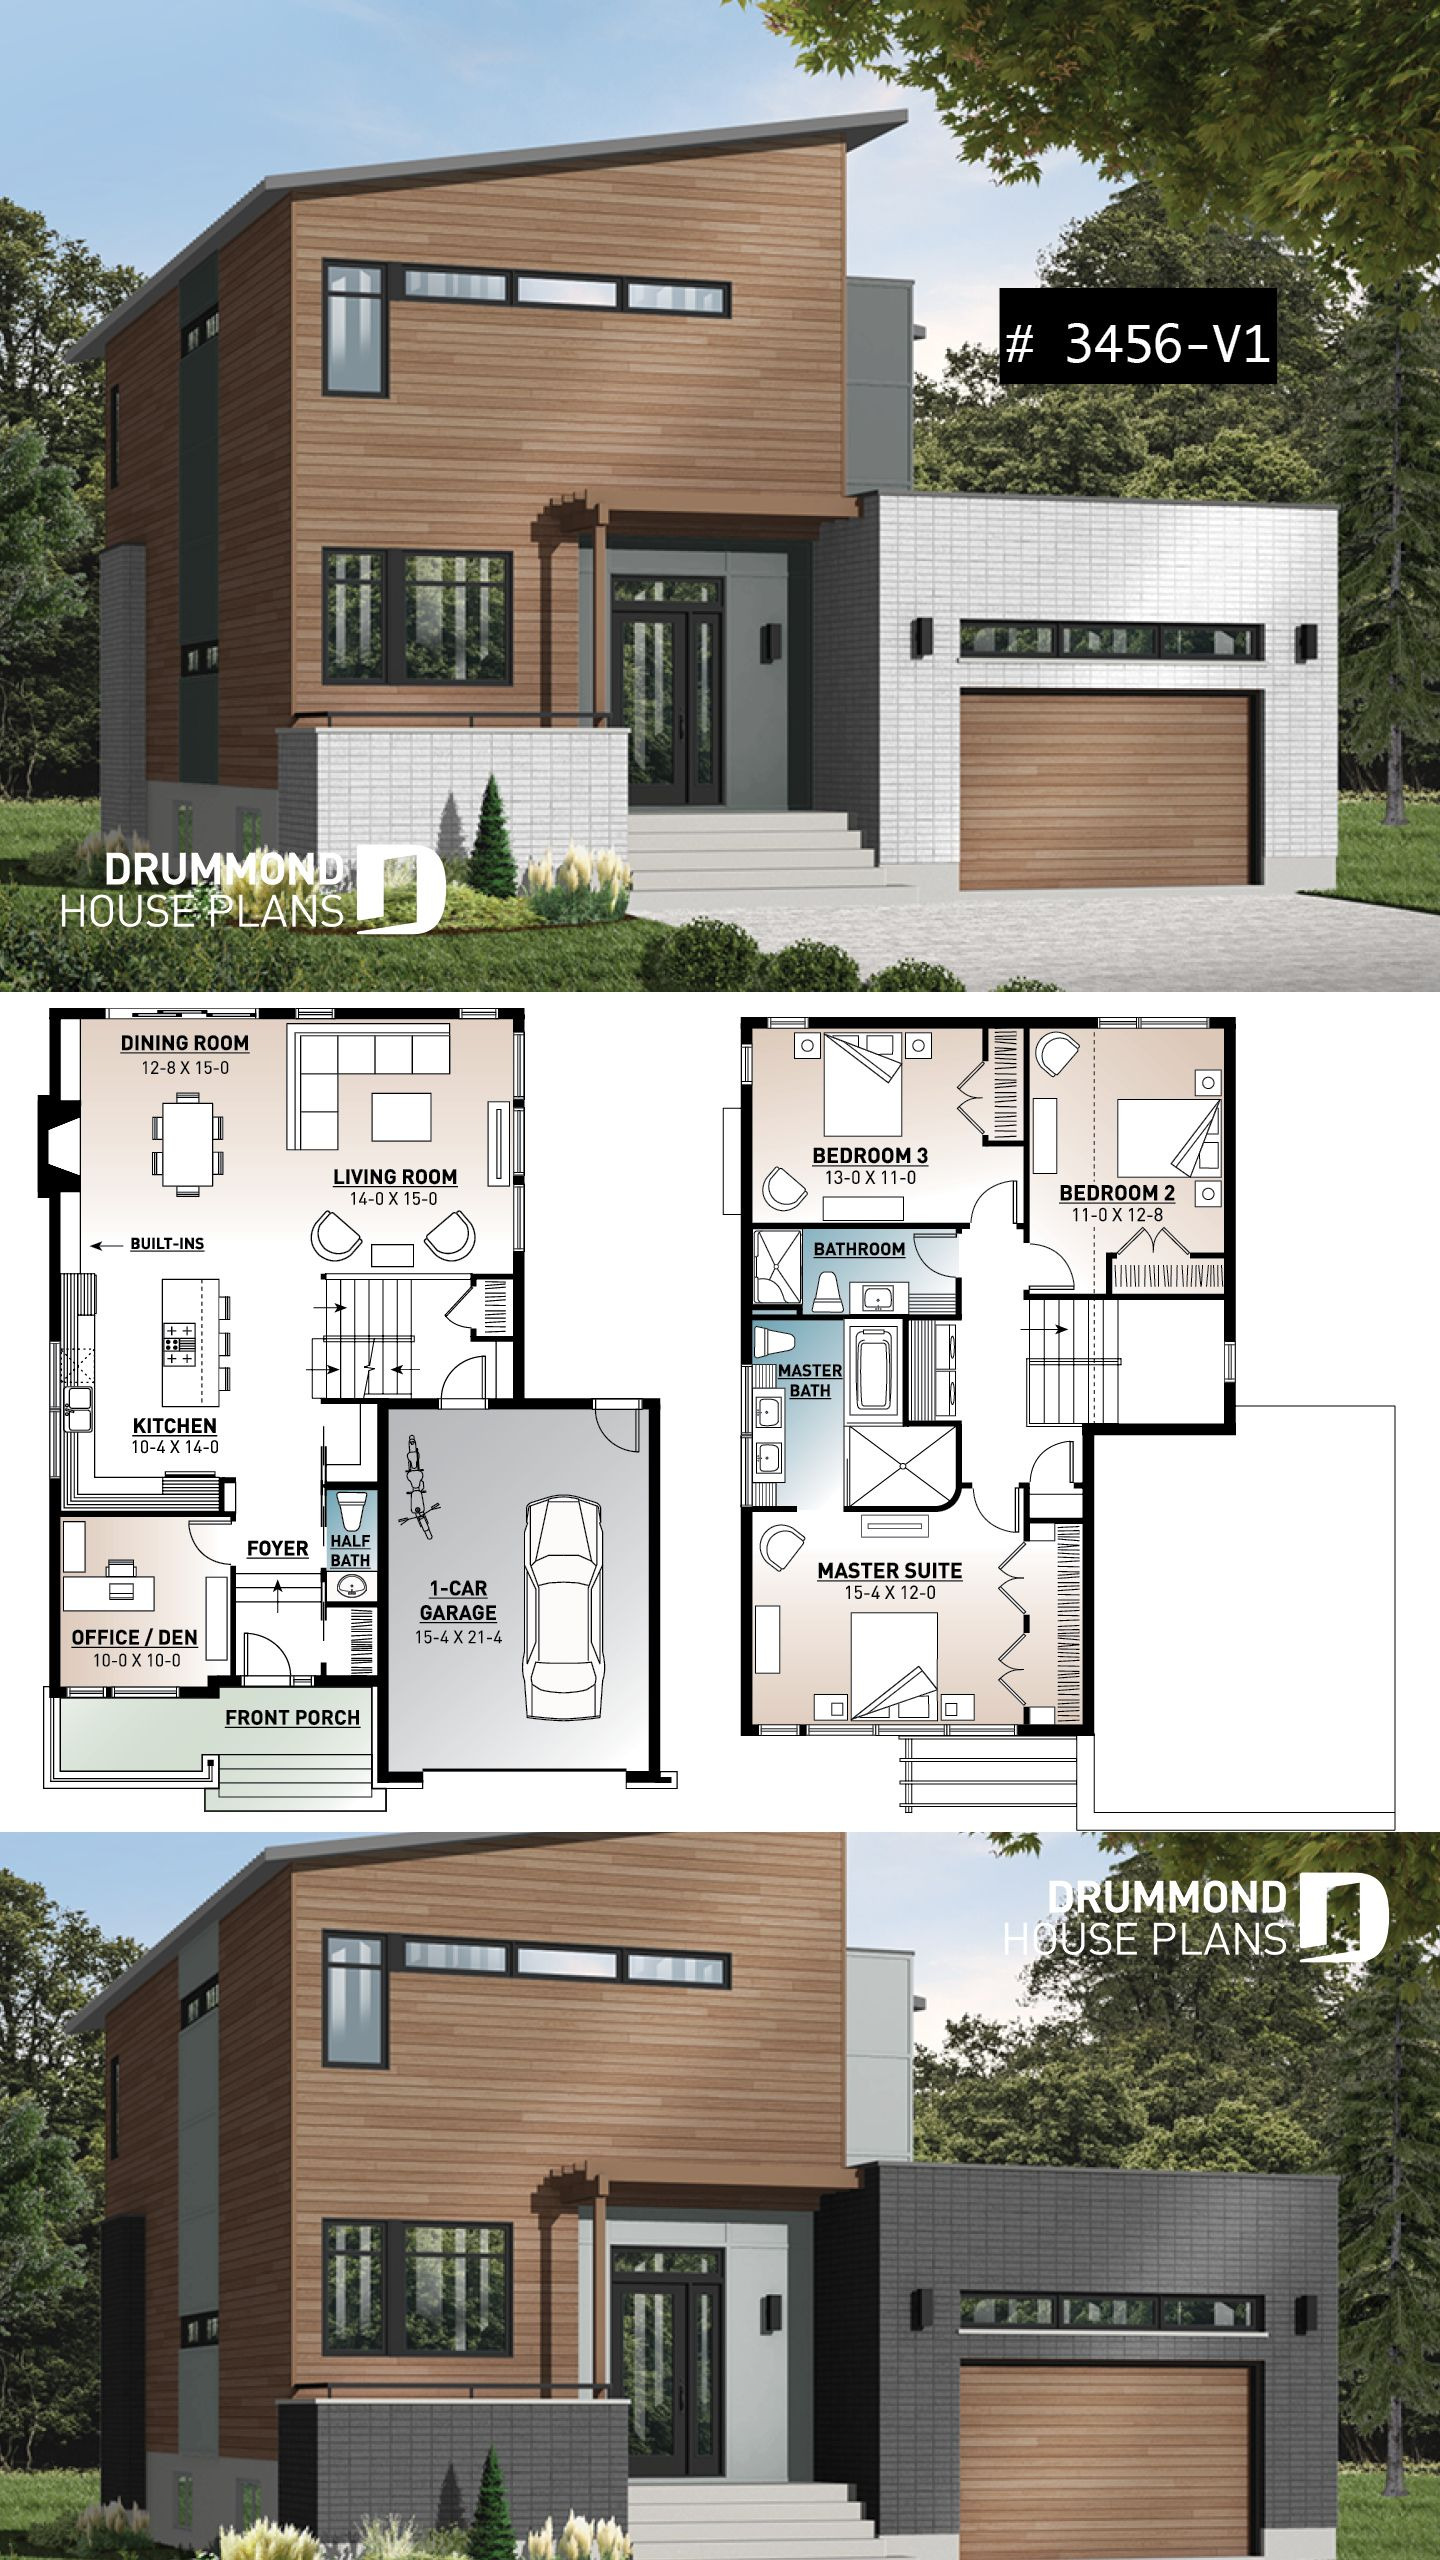 Open House Plans with Pictures Fresh House Plan Sallinger 2 No 3456 V1